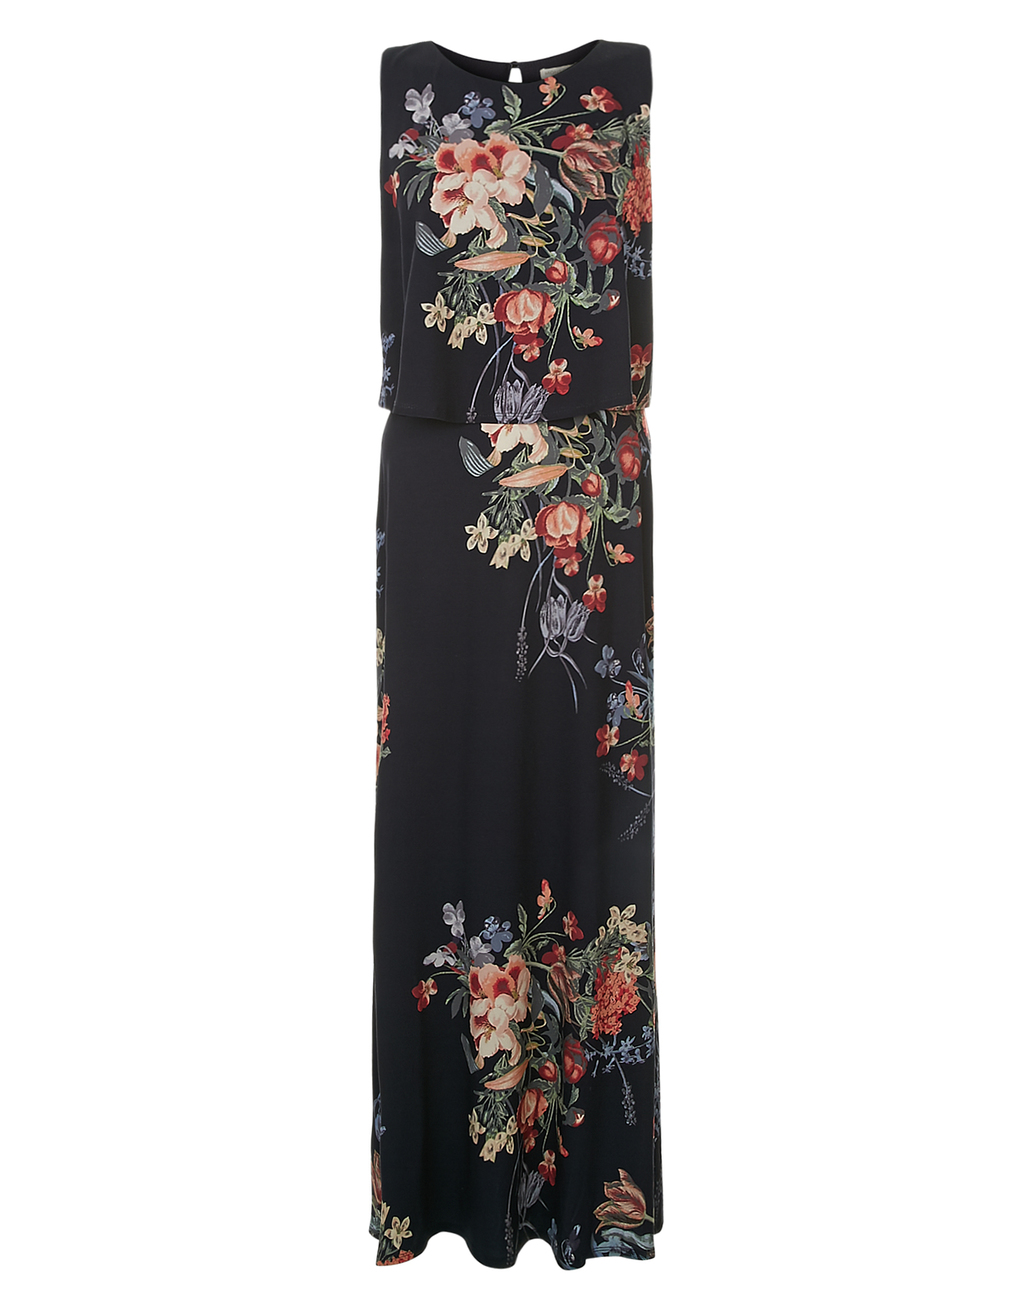 Rosetti Overlay Maxi Dress - sleeve style: sleeveless; style: maxi dress; secondary colour: true red; predominant colour: black; occasions: evening; length: floor length; fit: body skimming; fibres: viscose/rayon - stretch; neckline: crew; sleeve length: sleeveless; pattern type: fabric; pattern: florals; texture group: jersey - stretchy/drapey; multicoloured: multicoloured; season: s/s 2016